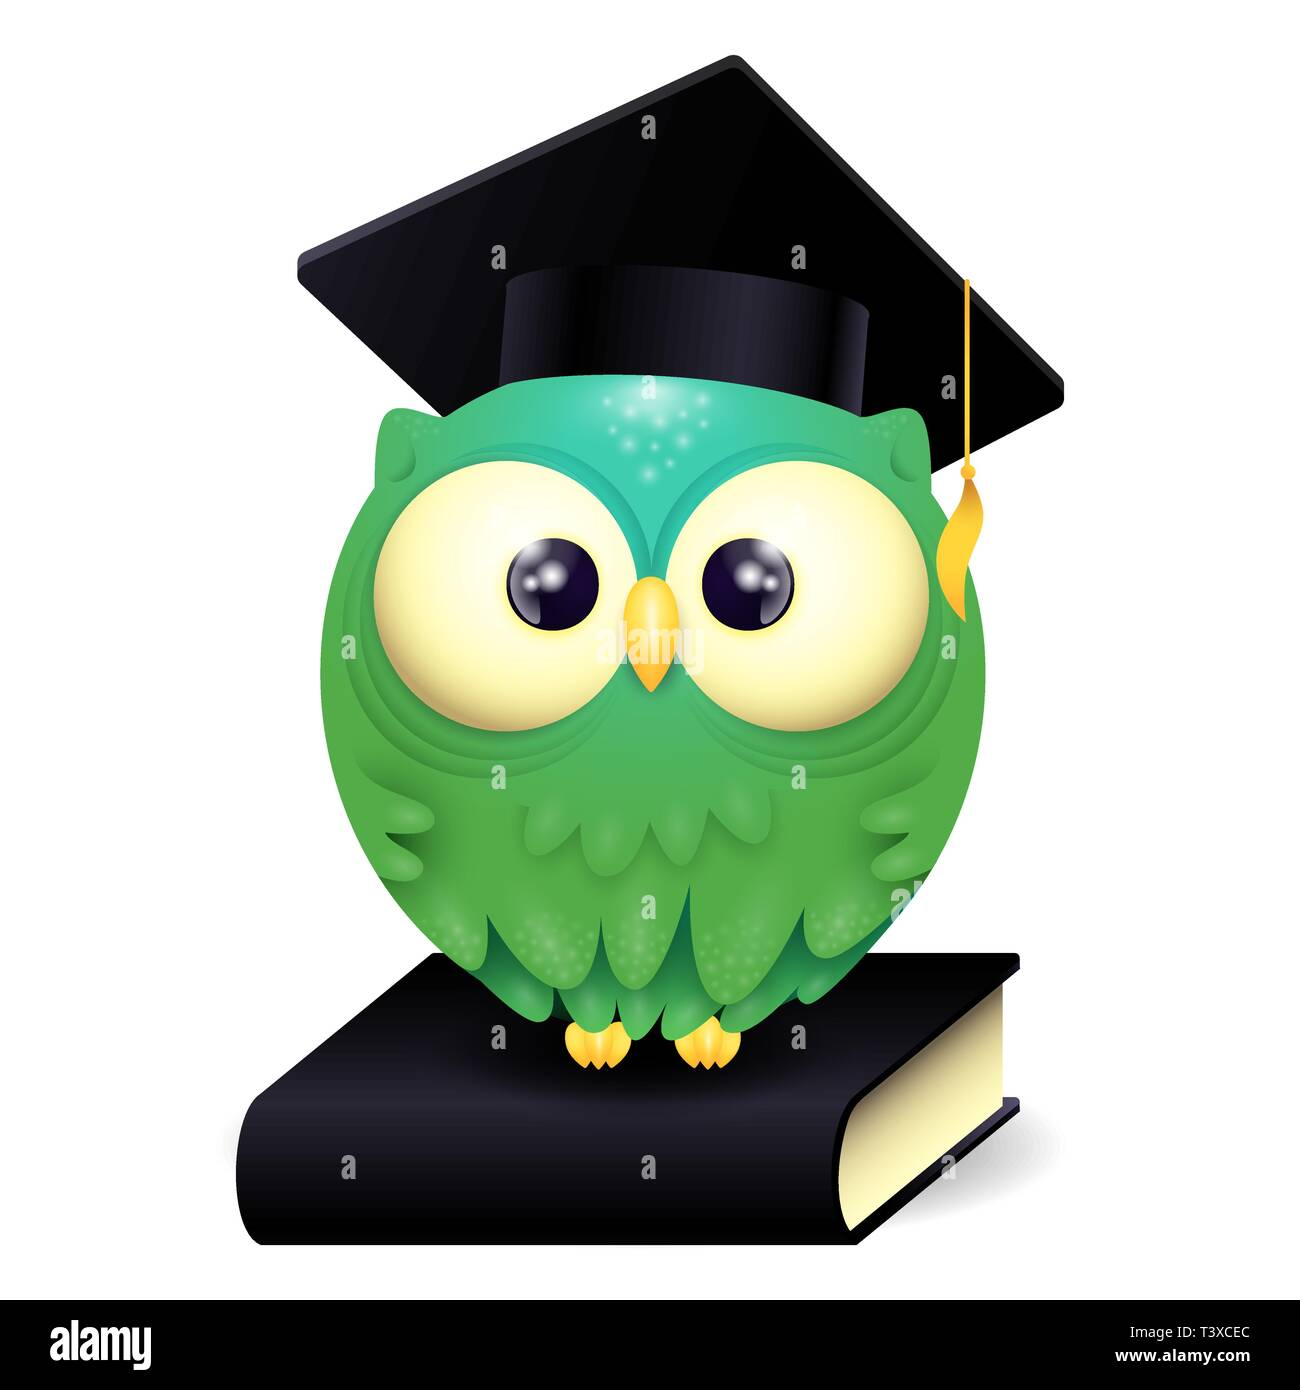 Vector Illustration of a cute lillte Owl wearing graduation cap and sitting on a black book - Stock Vector